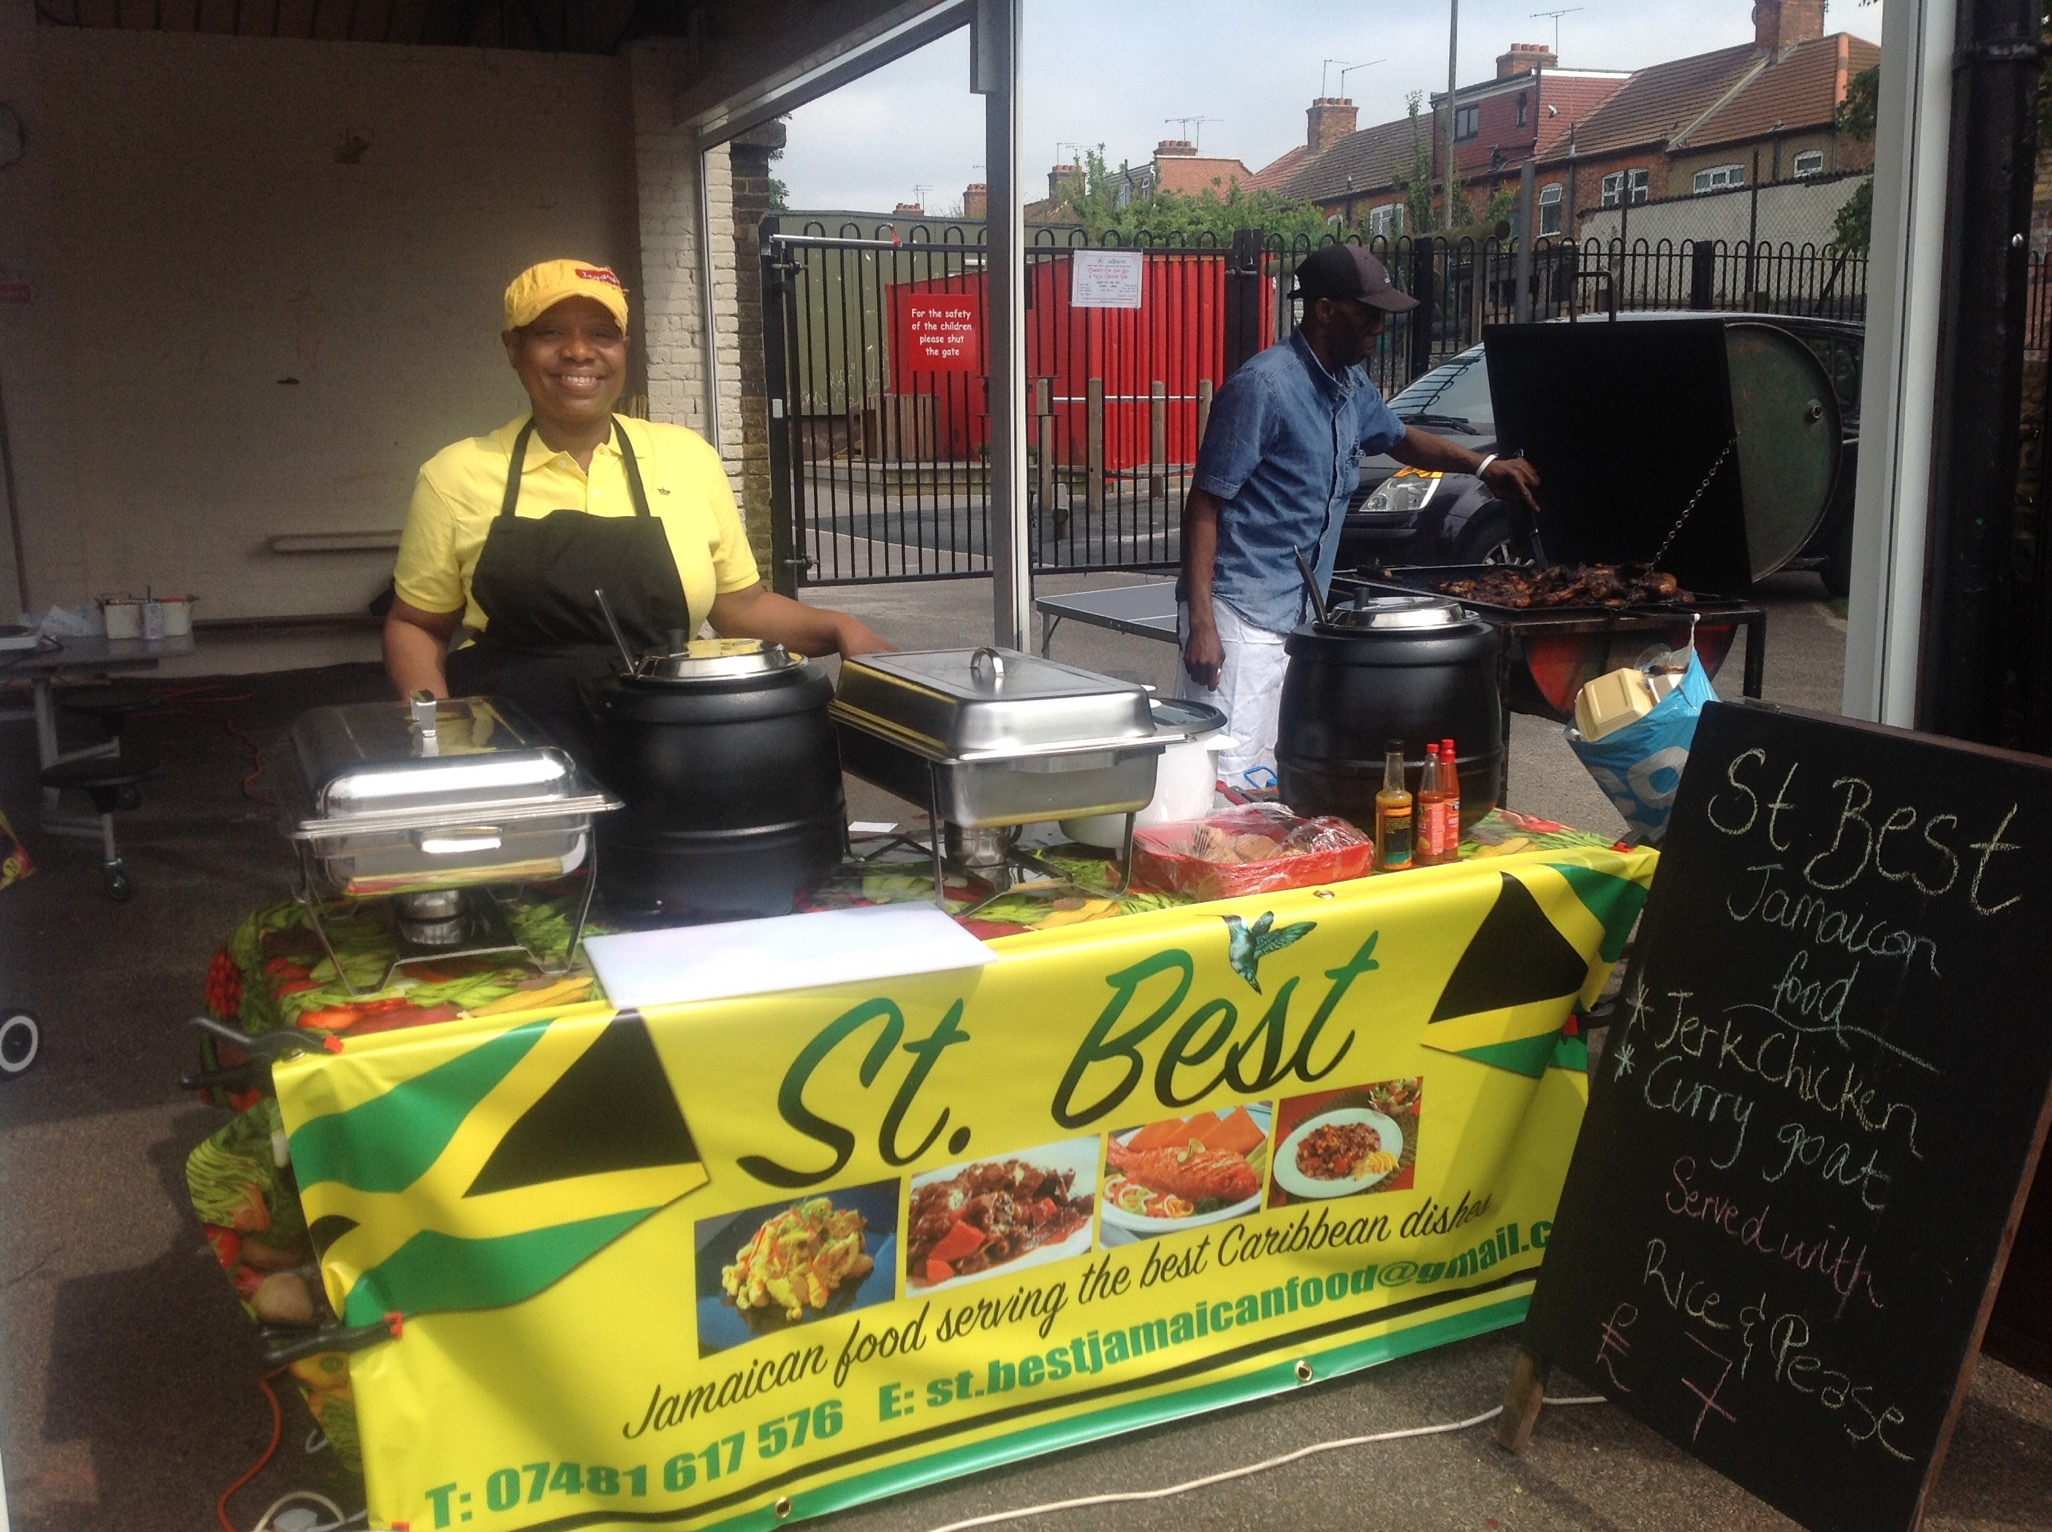 St Best Jamaican food